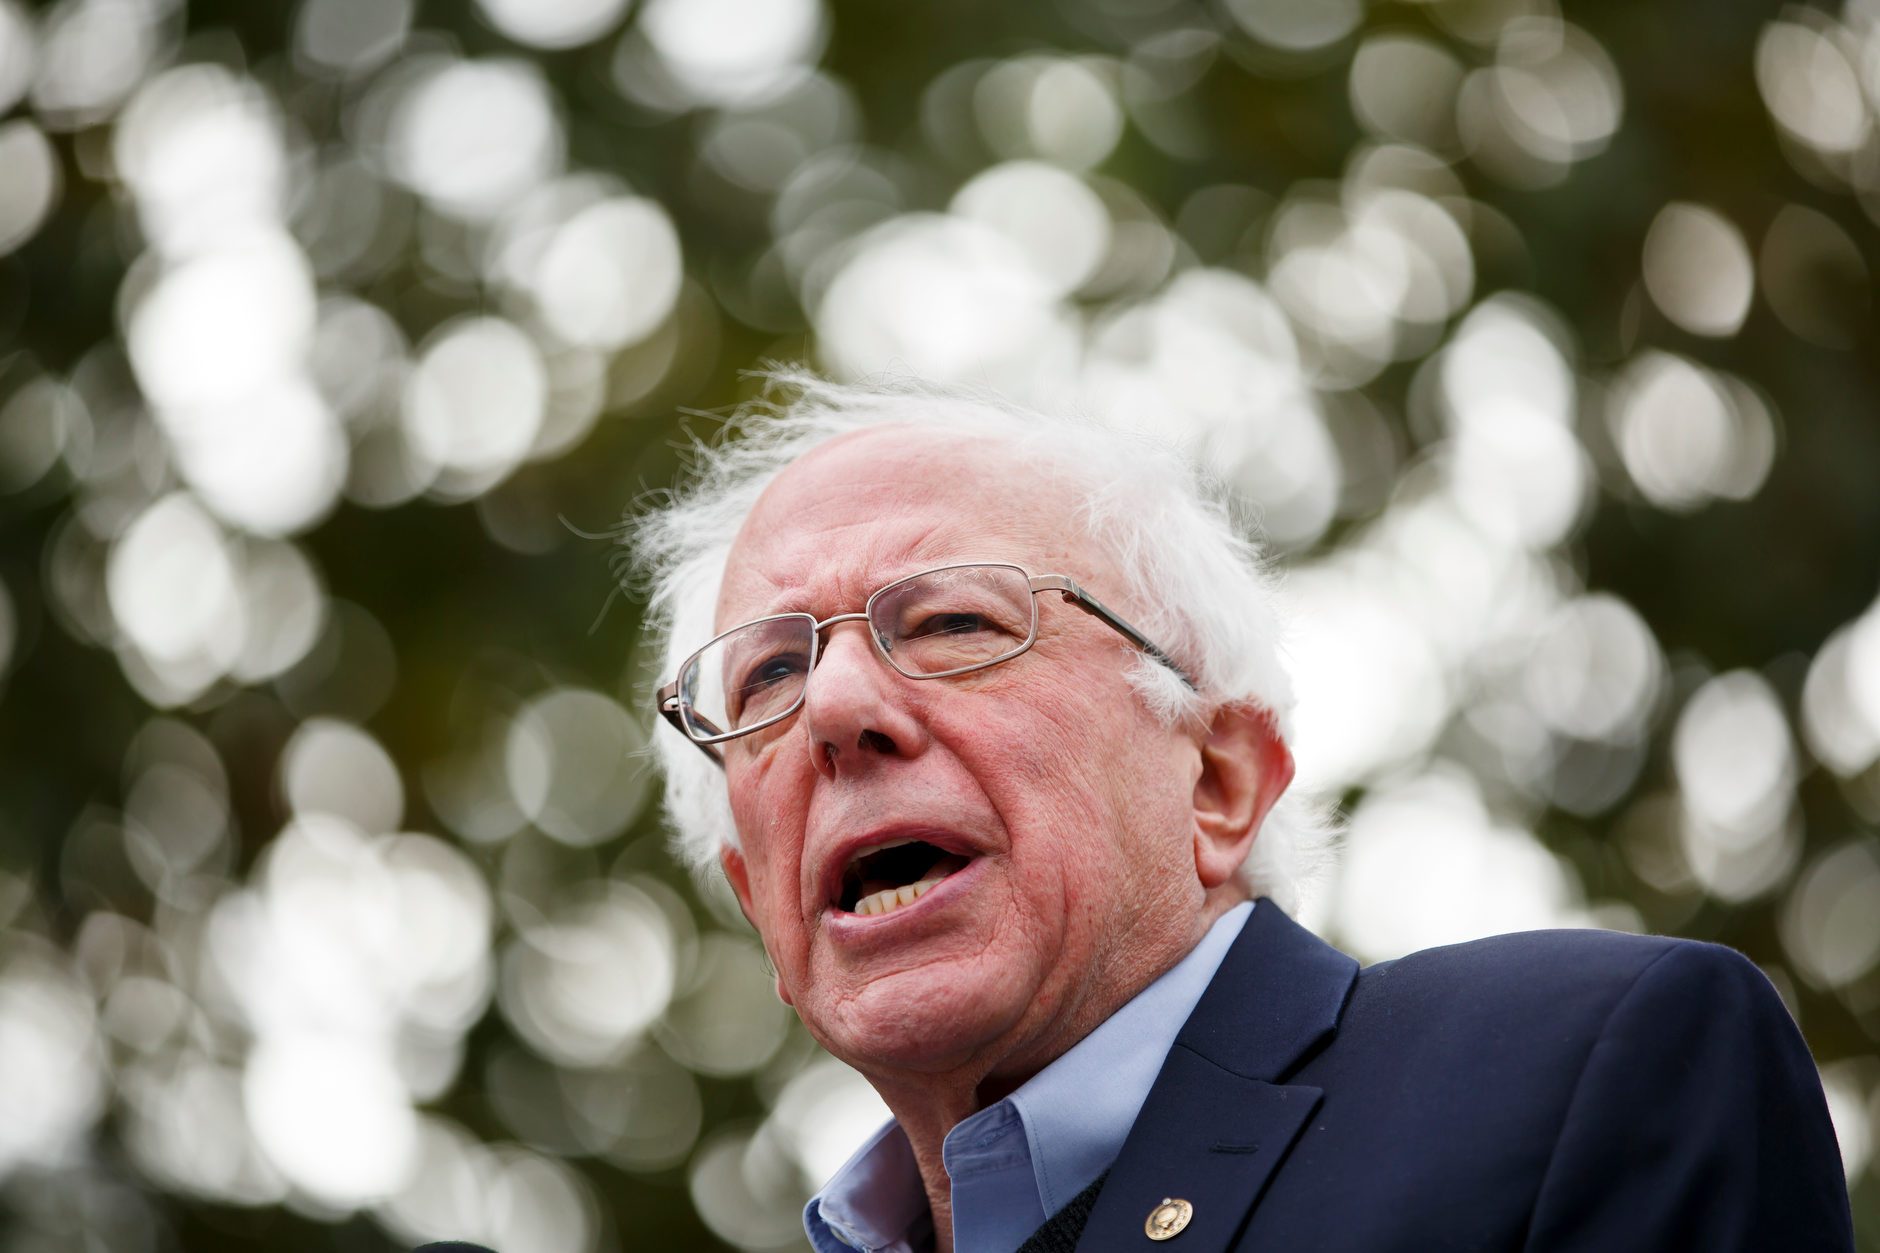 U.S. Sen. Bernie Sanders, I-VT, speaks during a rally for Liz Watson, the Democratic nominee for Indiana's 9th congressional district, in Dunn Meadow at Indiana University Bloomington on Friday, Oct. 19, 2018. (James Brosher/IU Communications)